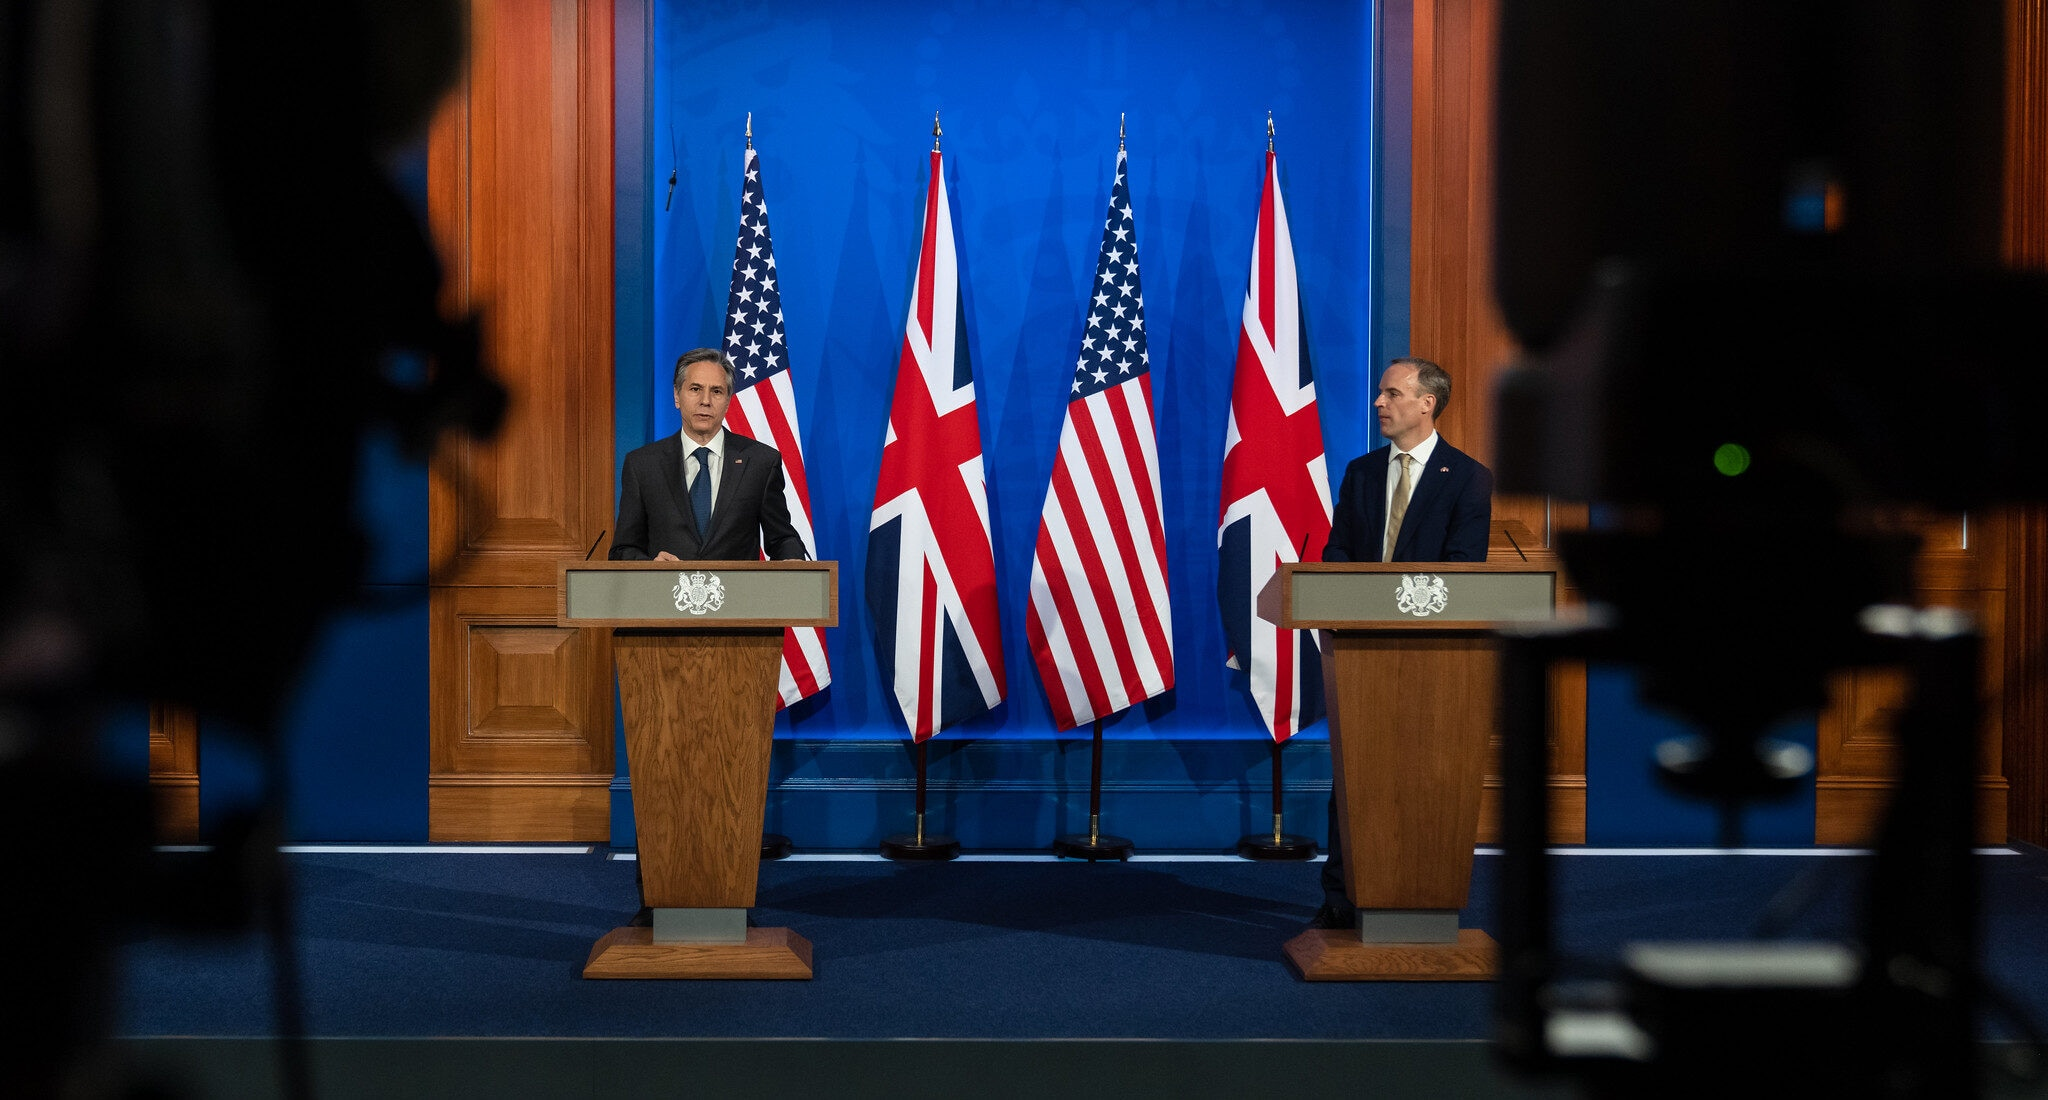 Secretary of State Antony J. Blinken participates in a virtual joint press conference with United Kingdom Foreign Secretary Dominic Raab, in London, United Kingdom, on May 3, 2021. [State Department Photo by Ron Przysucha/ Public Domain]